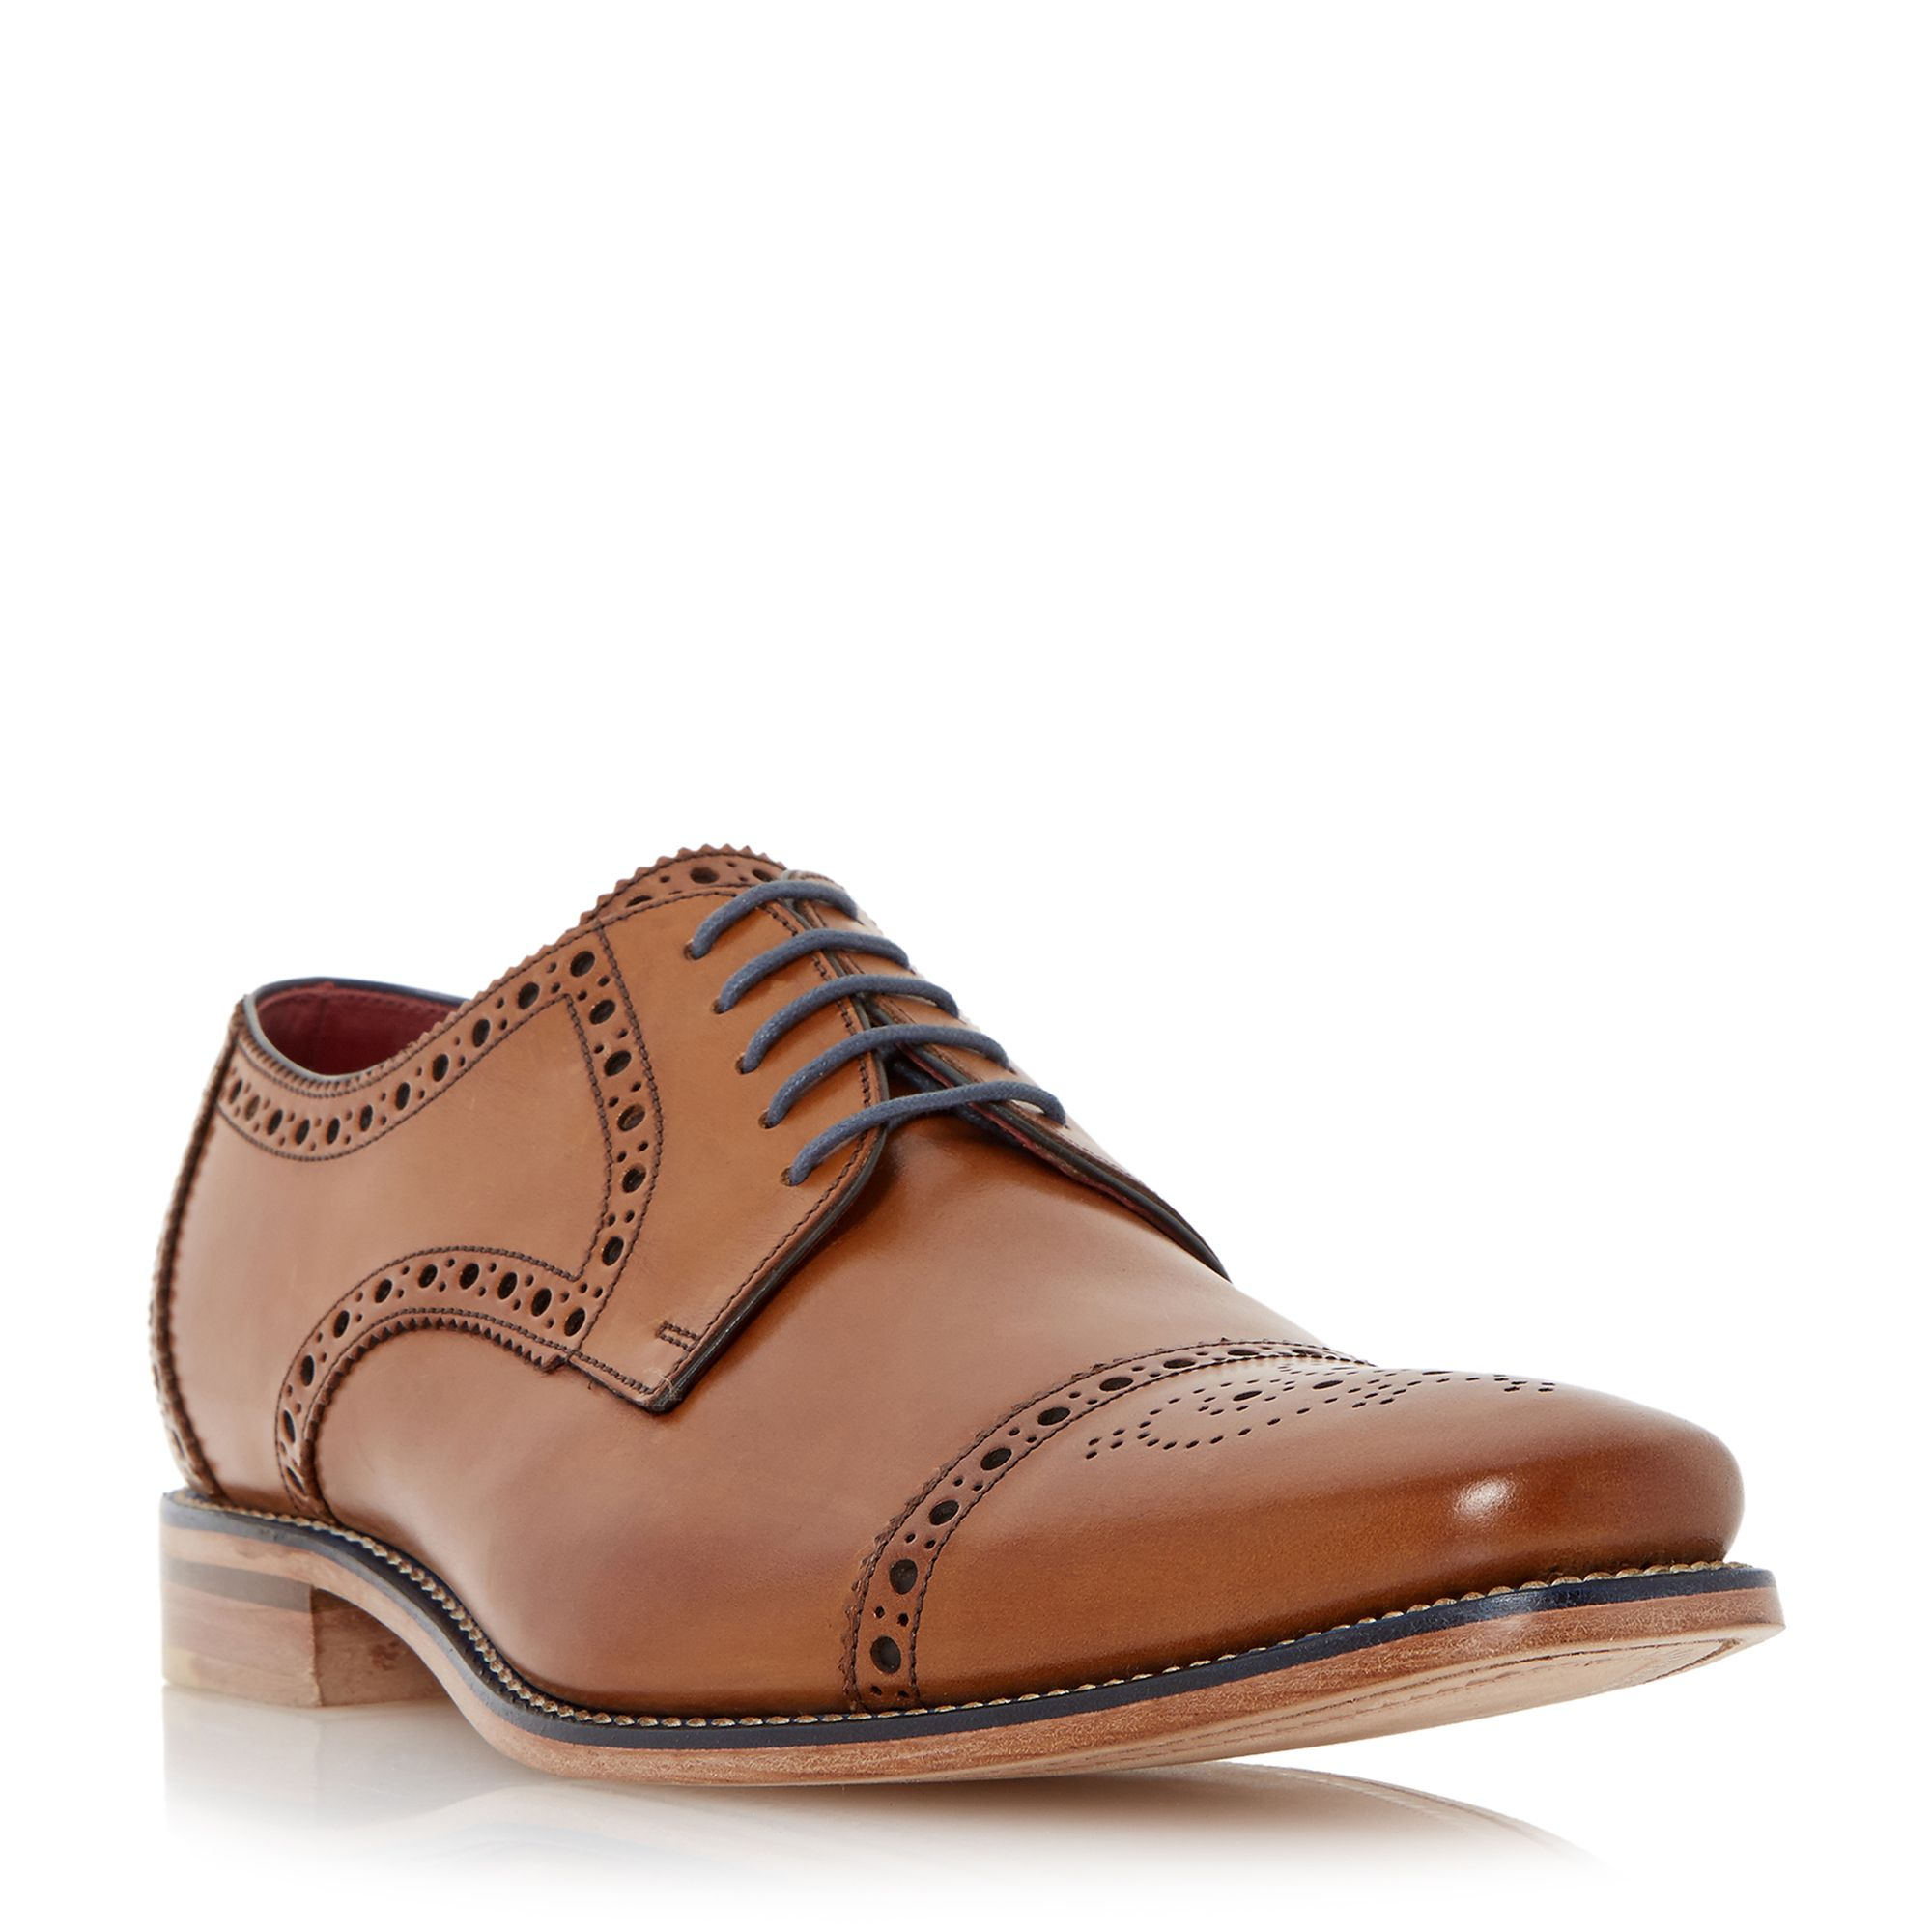 Loake Foley brogue toecap leather gibson shoes ...